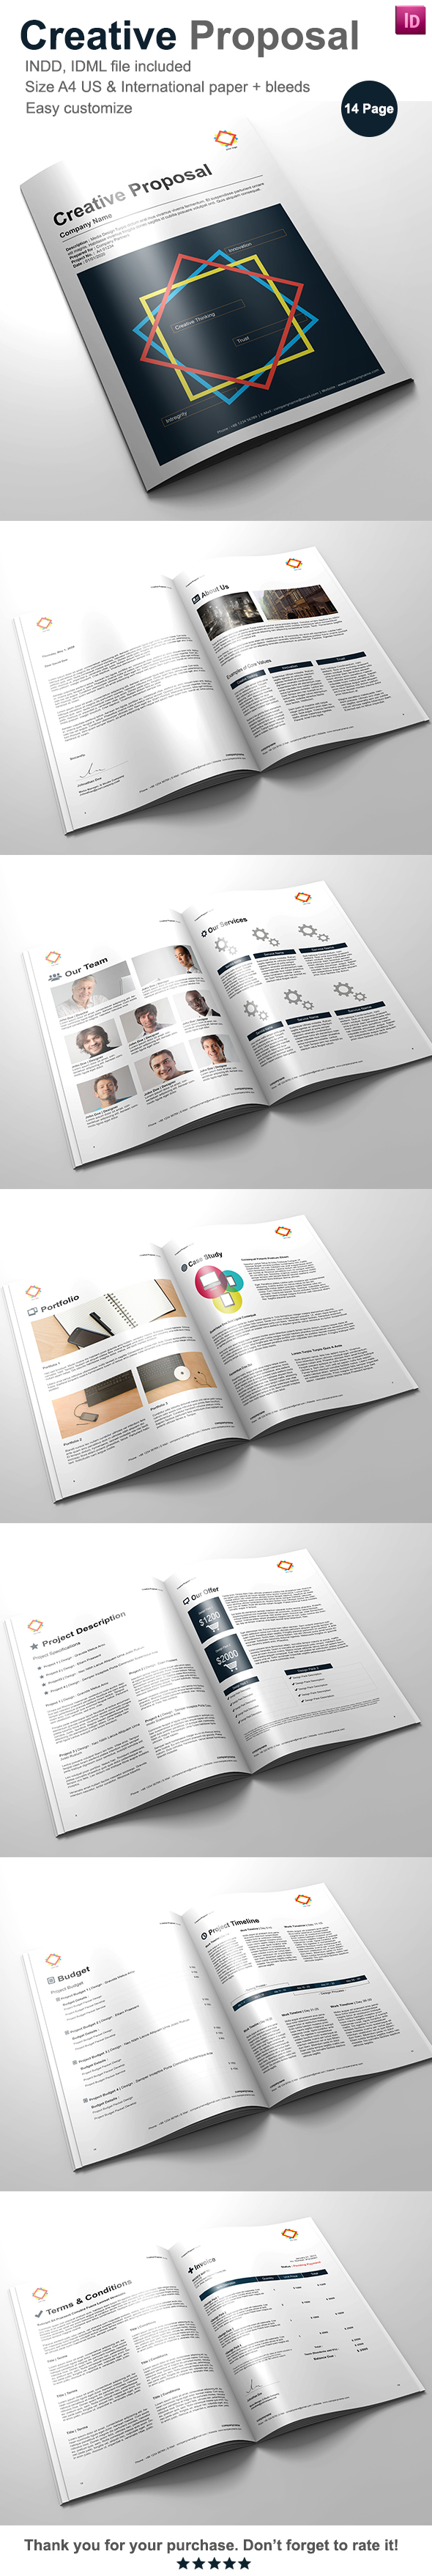 Gstudio Creative Proposal Template By Terusawa G Studio Via